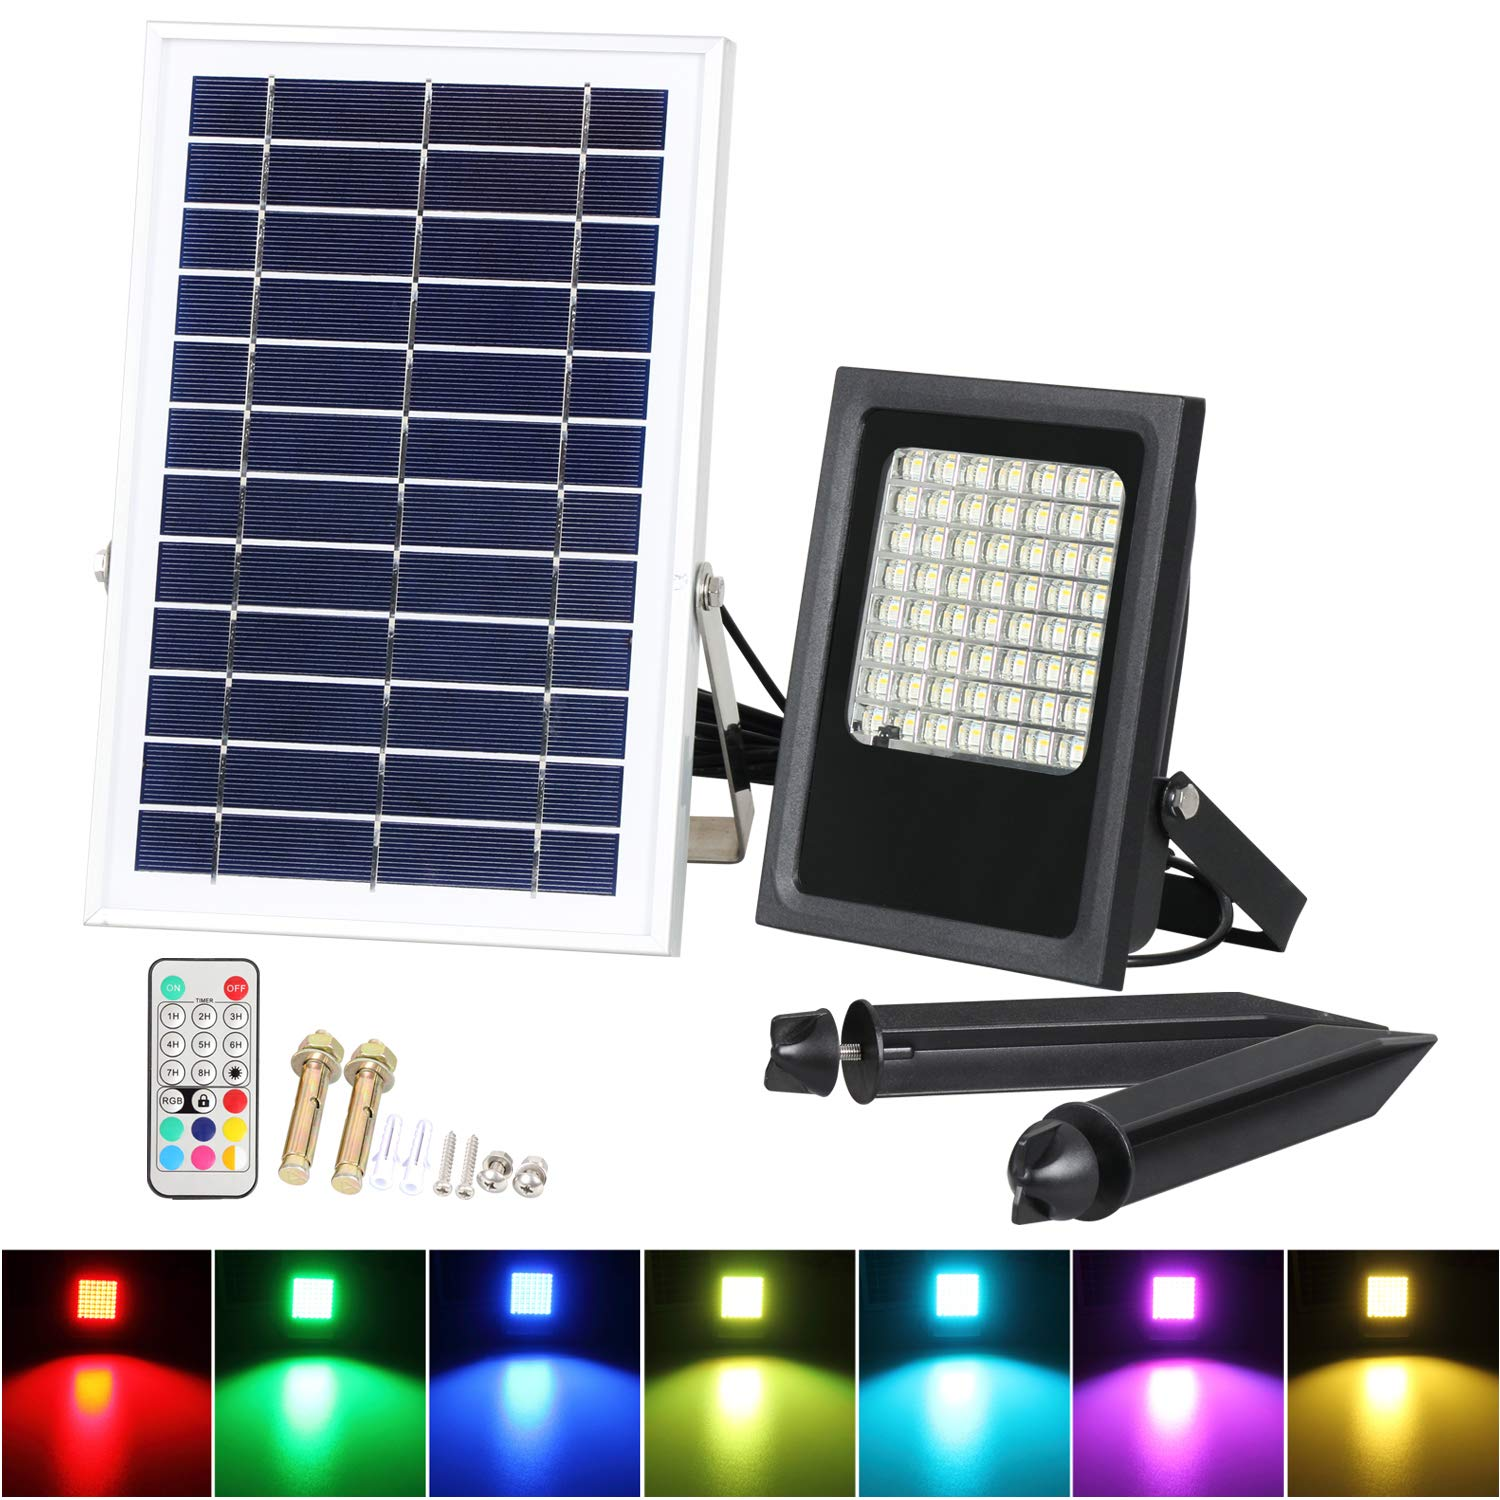 30W RGB Floodlights, T-SUNRISE Multi Colors LED Security Light, 16 Colours & 4 Modes, UK 3-Plug & Remote Control, IP65 Waterproof LED Floodlight, Wall Washer Light for Garden, Yard, Warehouse Sidewalk [Energy Class A+]